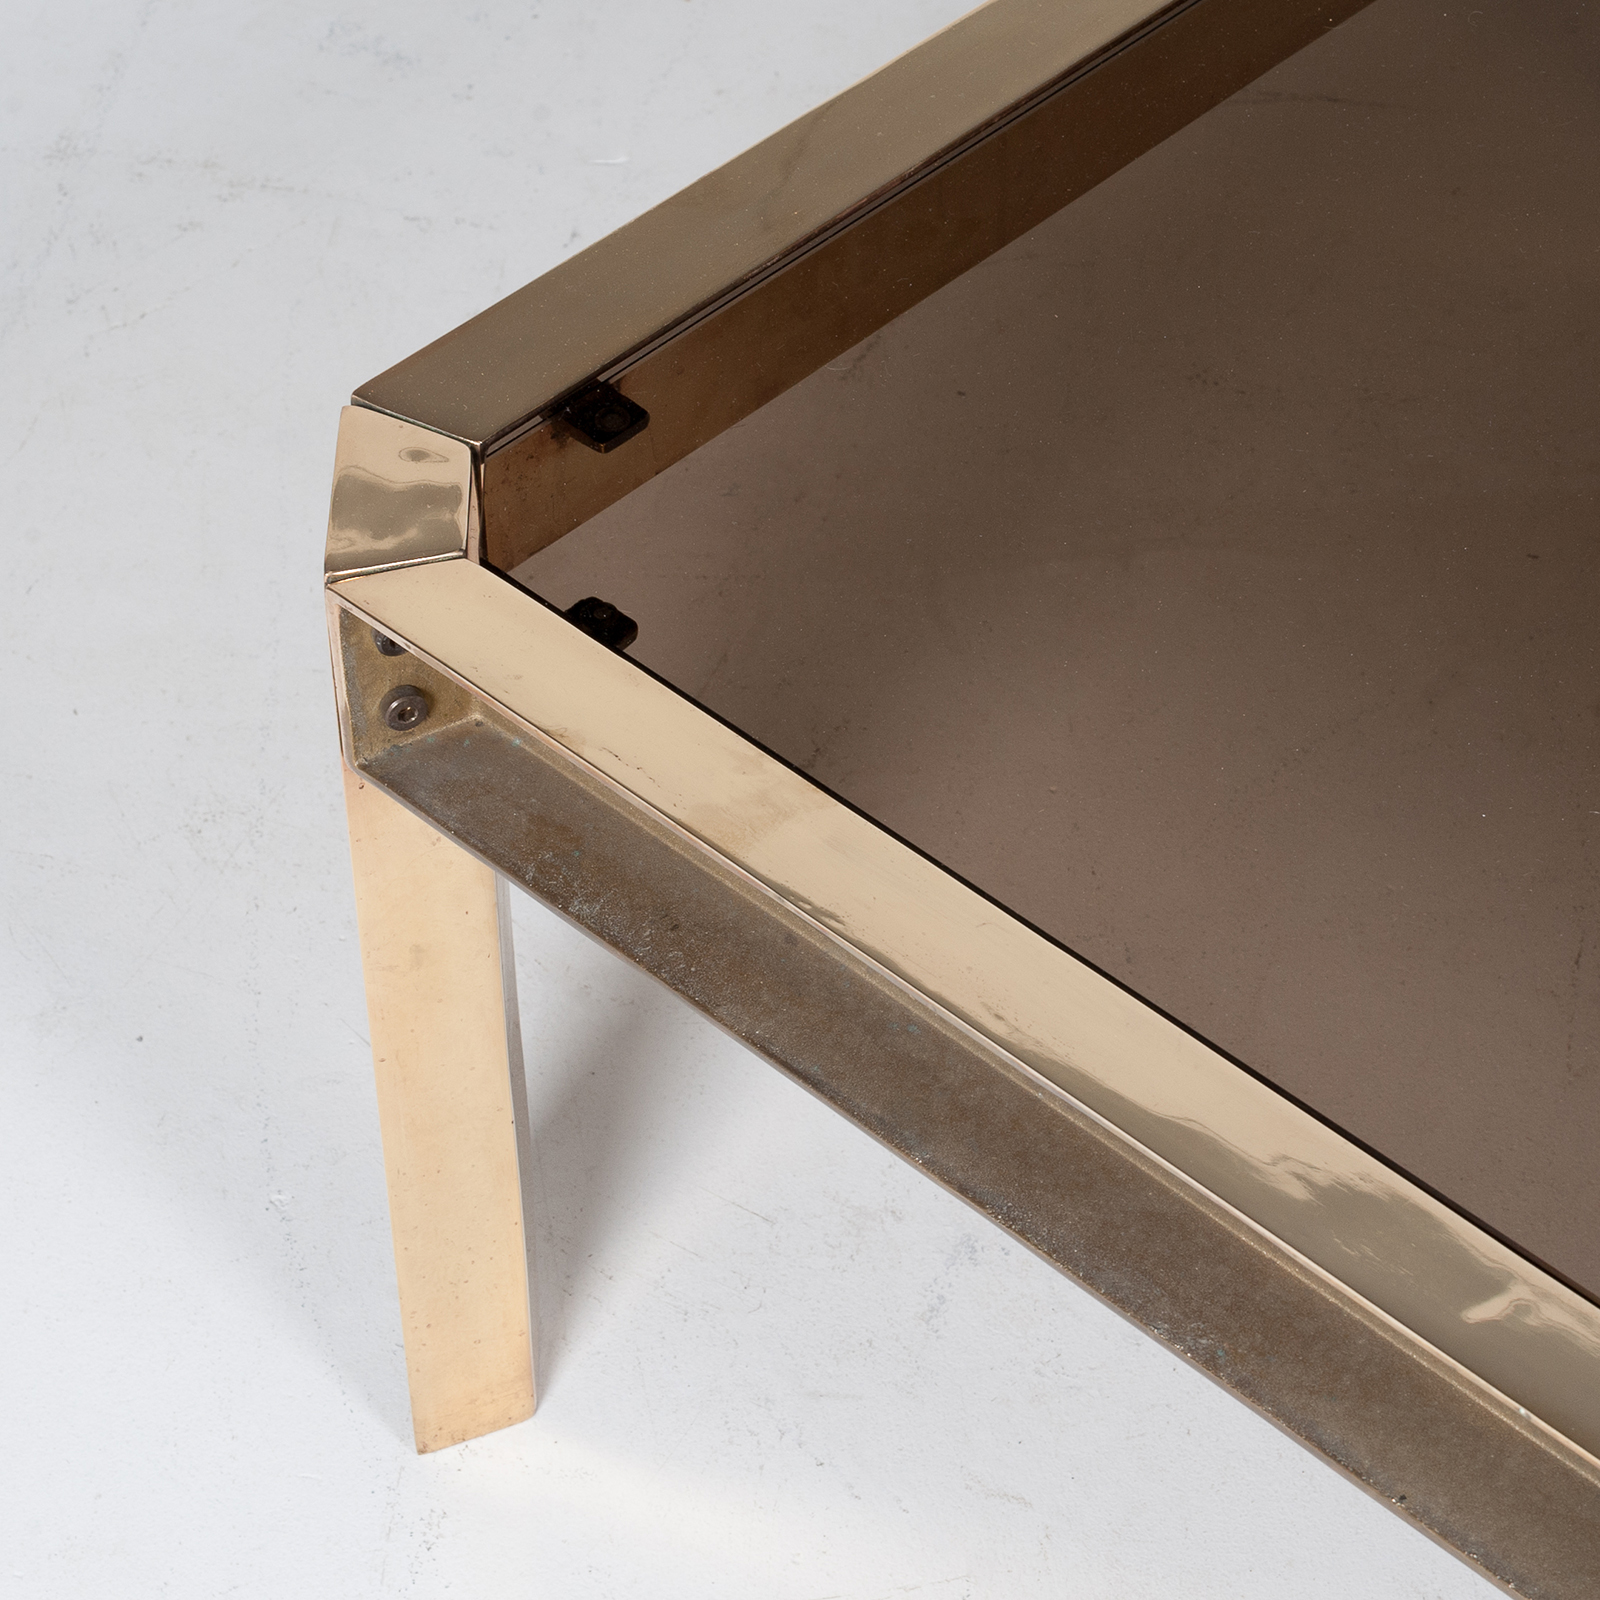 Side Table By Peter Ghyczy With Hollow Cast Brass Frame And Smoked Glass Top, 1970s, The Netherlands 29